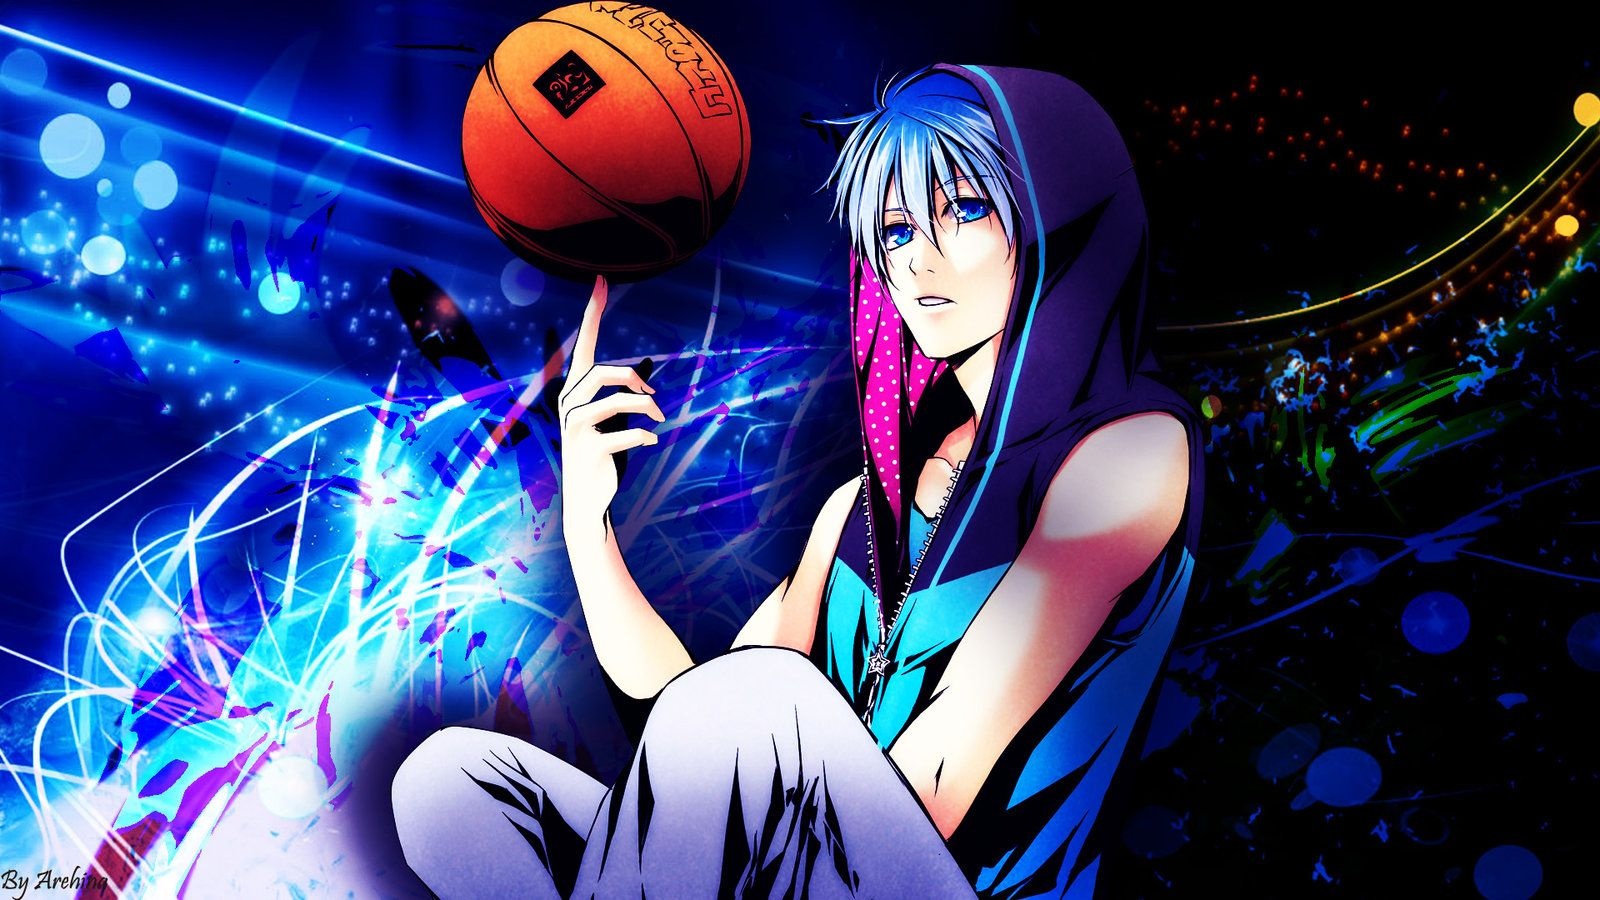 Basketball Anime Wallpapers Top Free Basketball Anime Backgrounds Wallpaperaccess